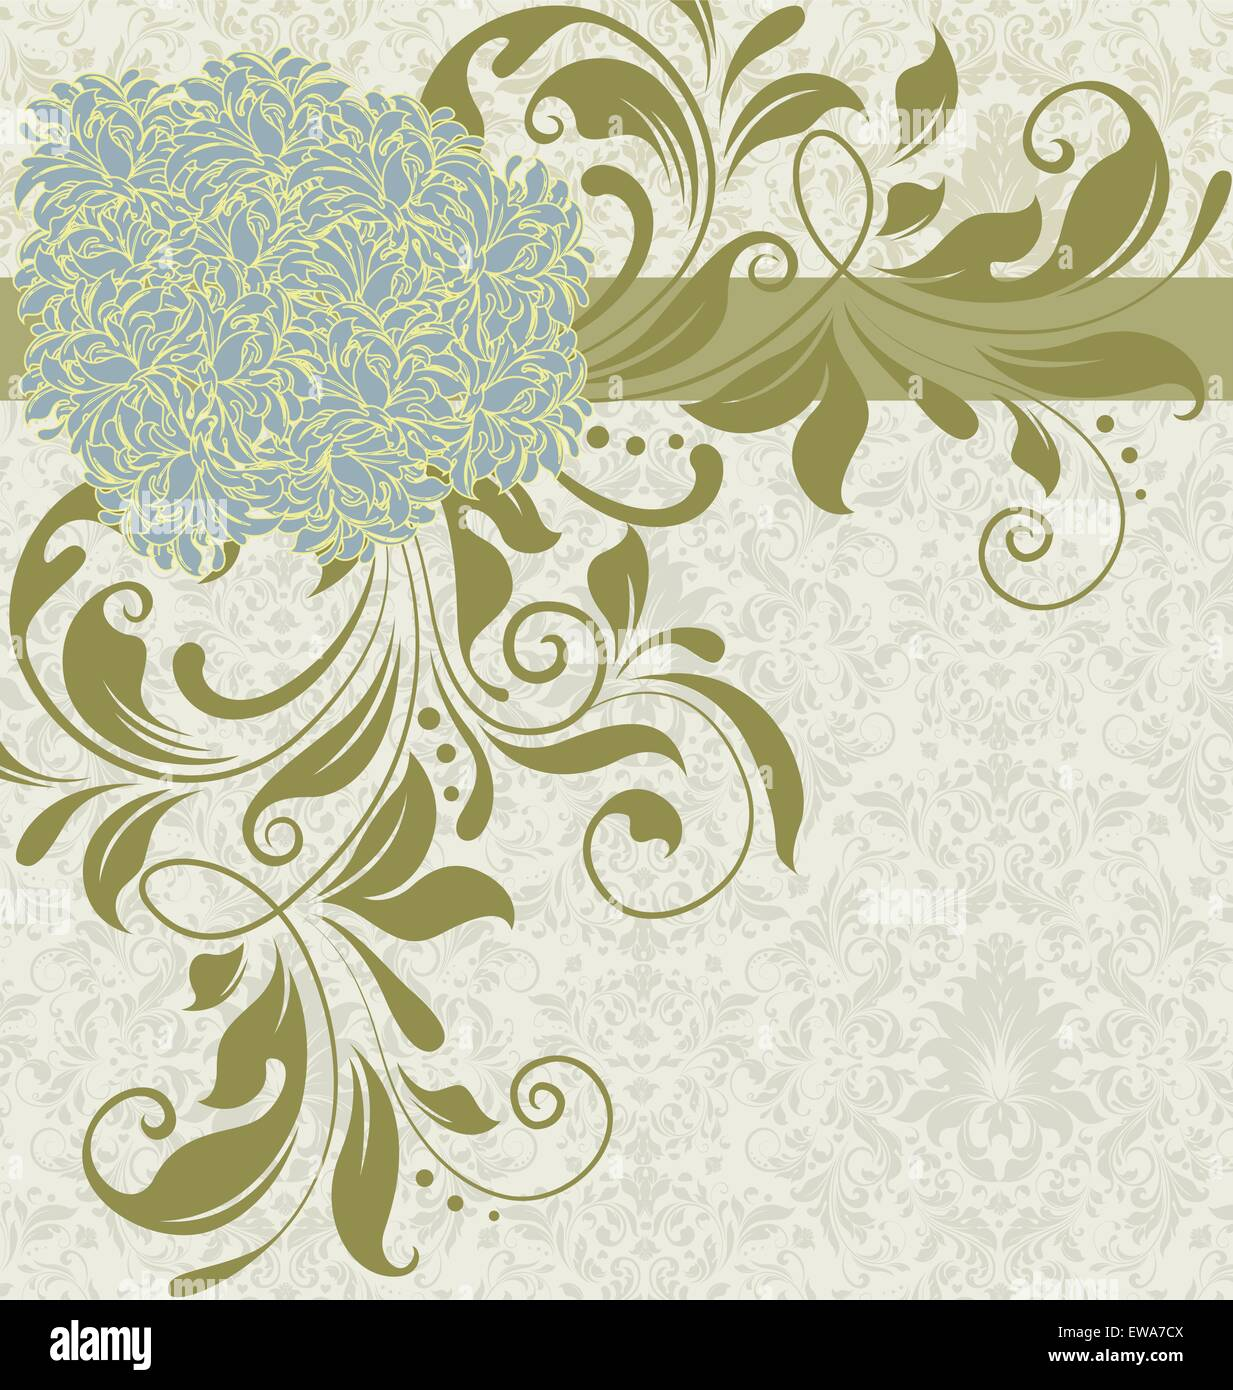 vintage background with ornate elegant retro abstract floral design